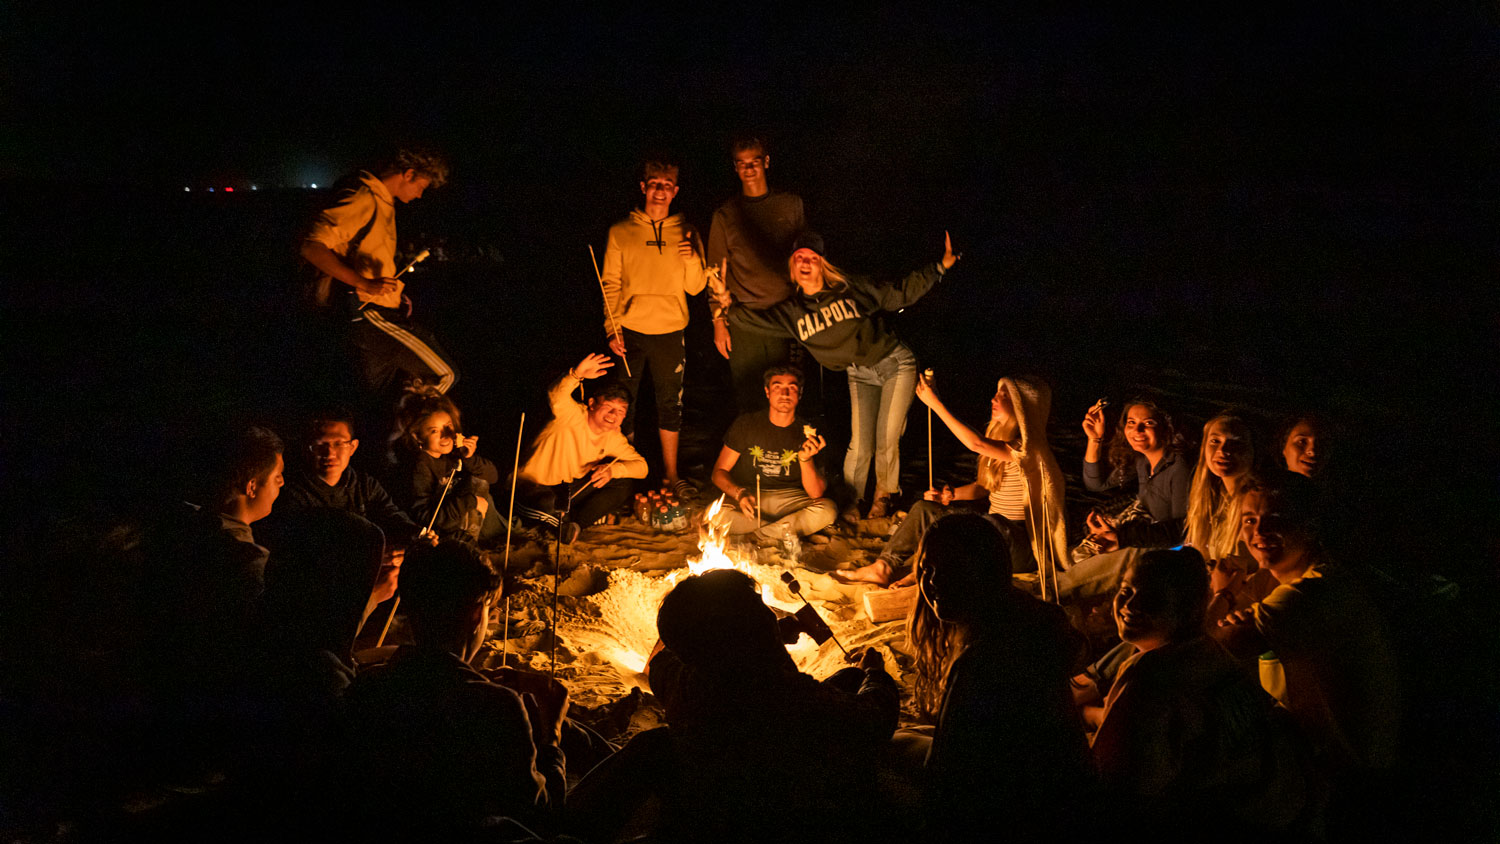 Students smile around a WOW group bonfire at Grover Beach